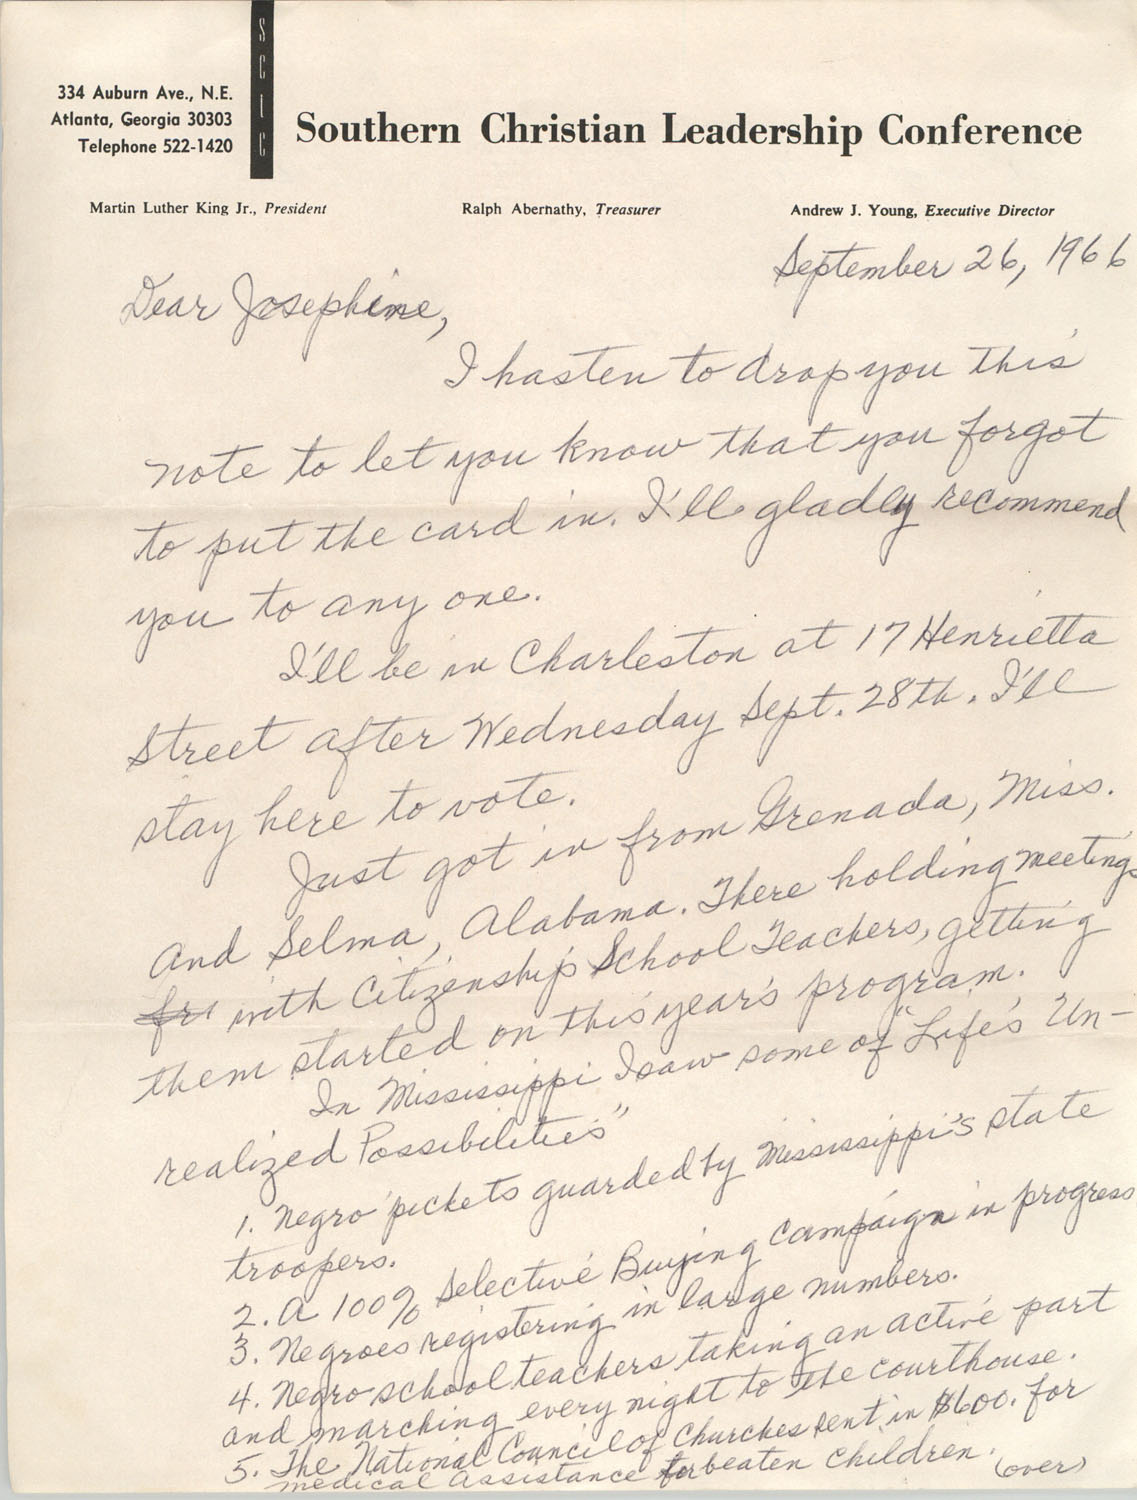 Letter from Septima P. Clark to Josephine Rider, September 26, 1966